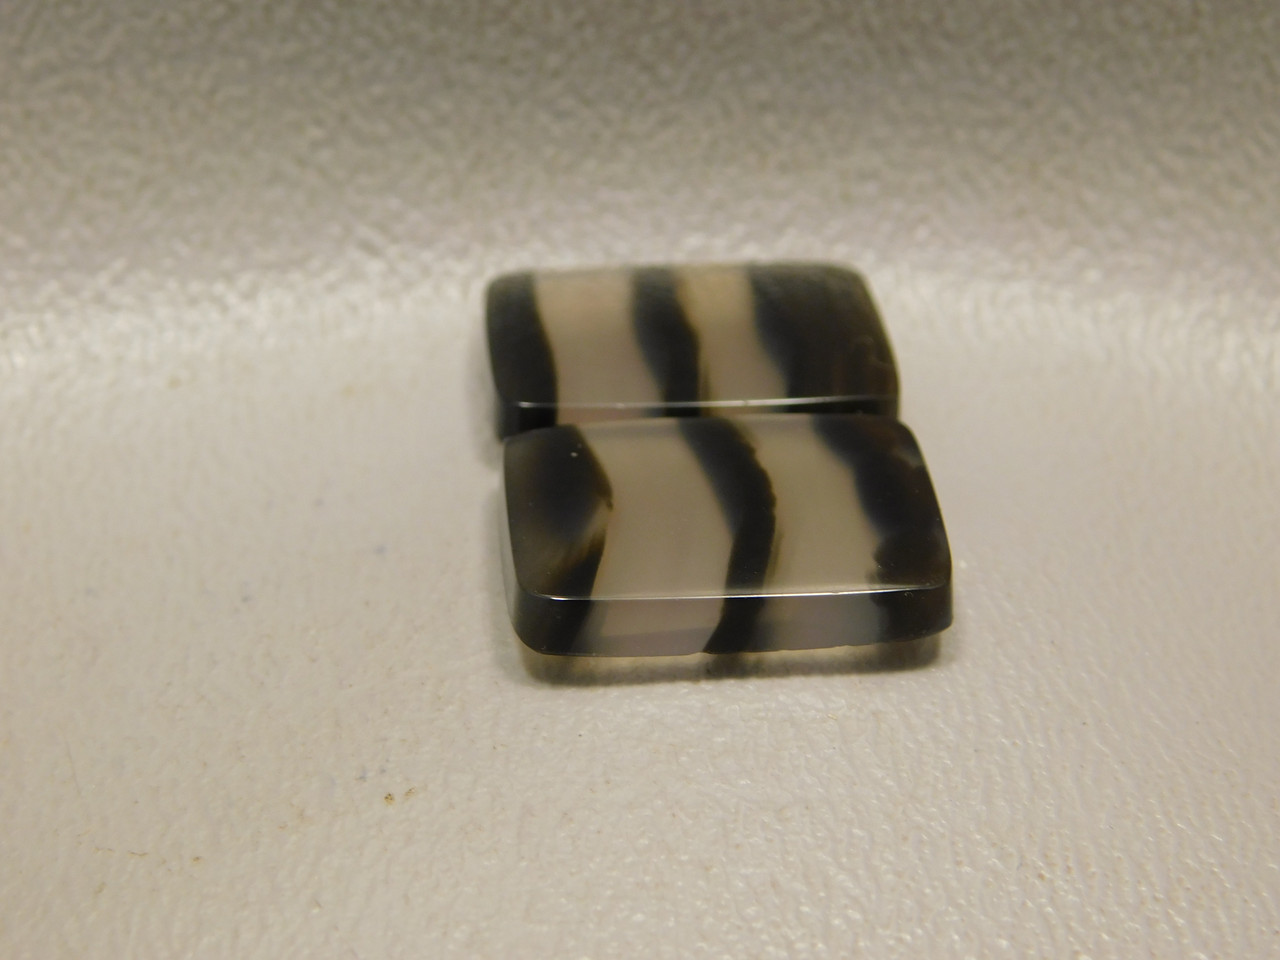 Translucent Black and Clear Banded Agate Matched Pair Cabochons #20